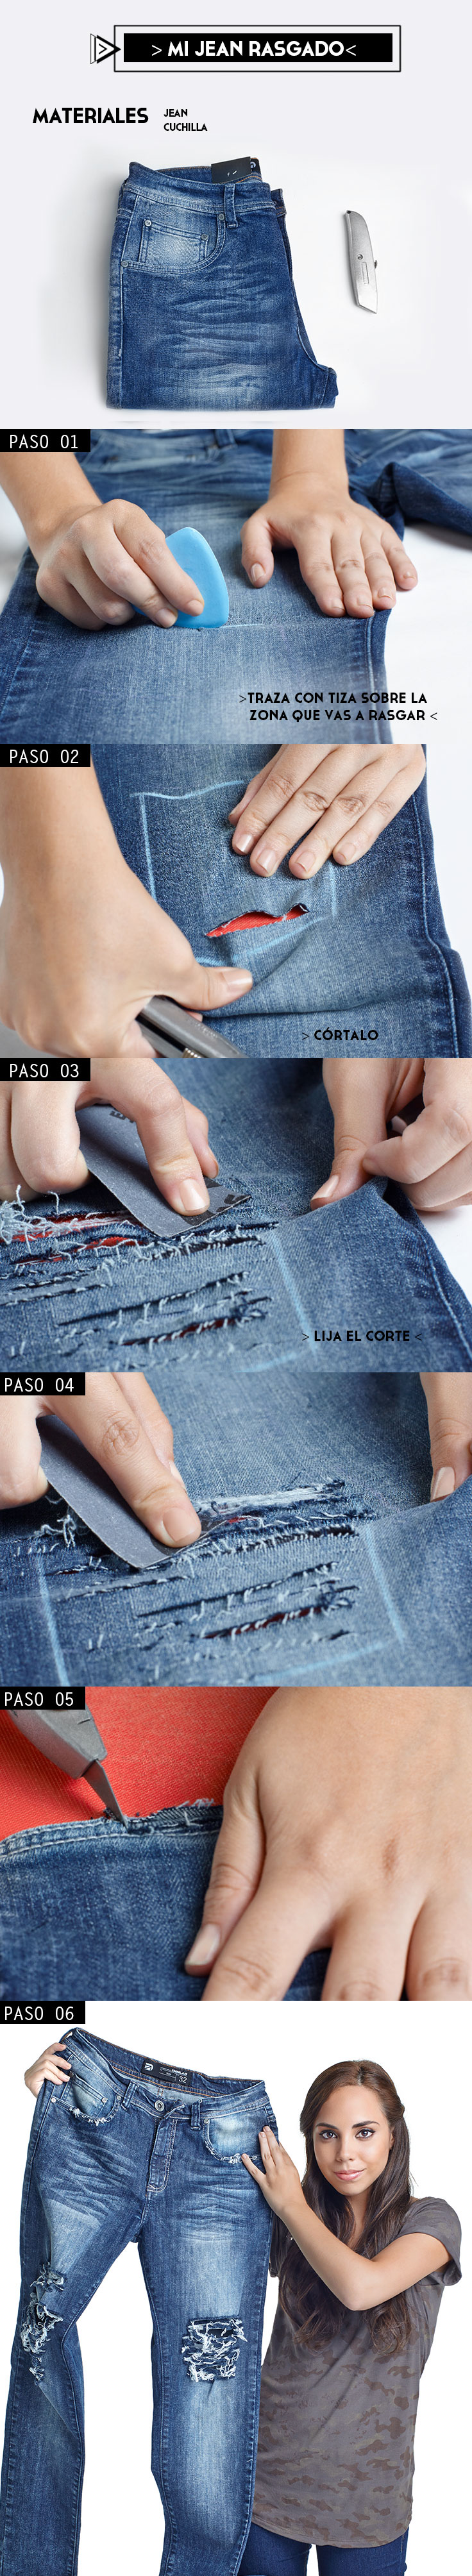 Photo of actualizar pantalones! Jajaja